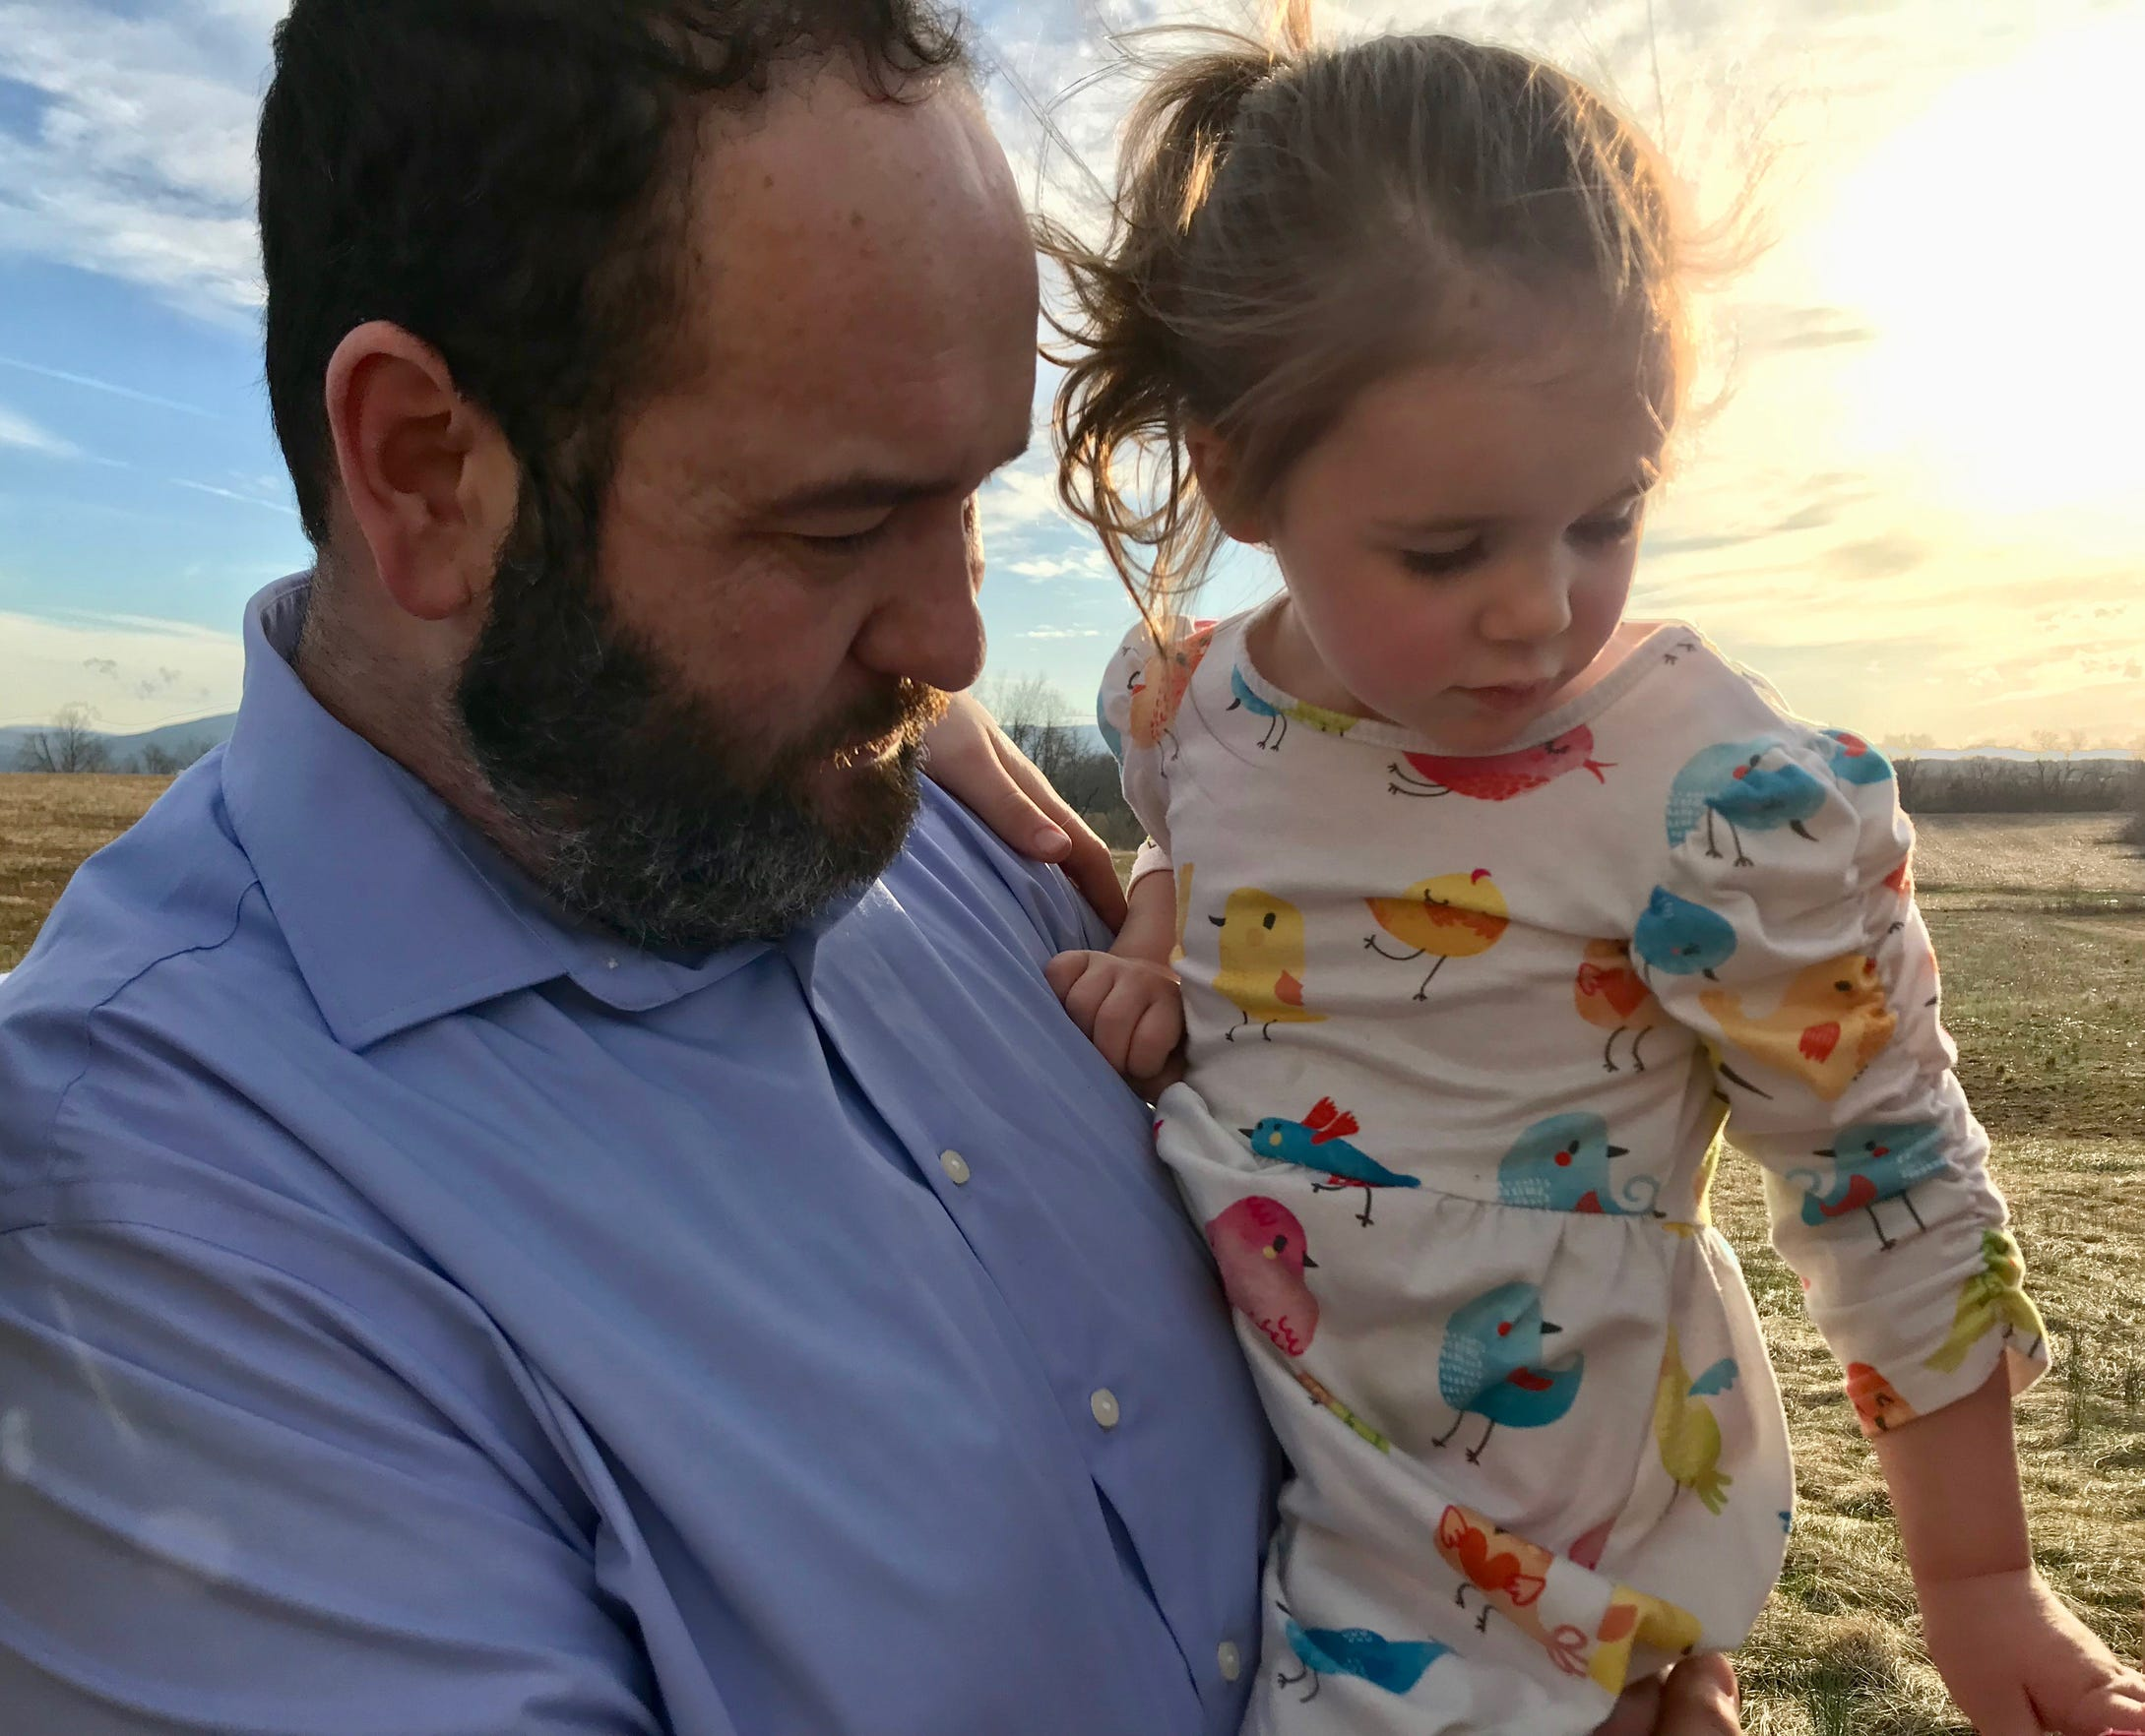 """""""I feel like I'm waiting for the other shoe to drop. I'm constantly in a state of alert waiting for something to happen."""" Brent Bussey holds his daughter Rebecca, 3, in the backyard of their home in Ladd, Virginia, on Friday, March 15, 2019. Rebecca has the rare disease Systemic Juvenile Idiopathic Arthritis."""